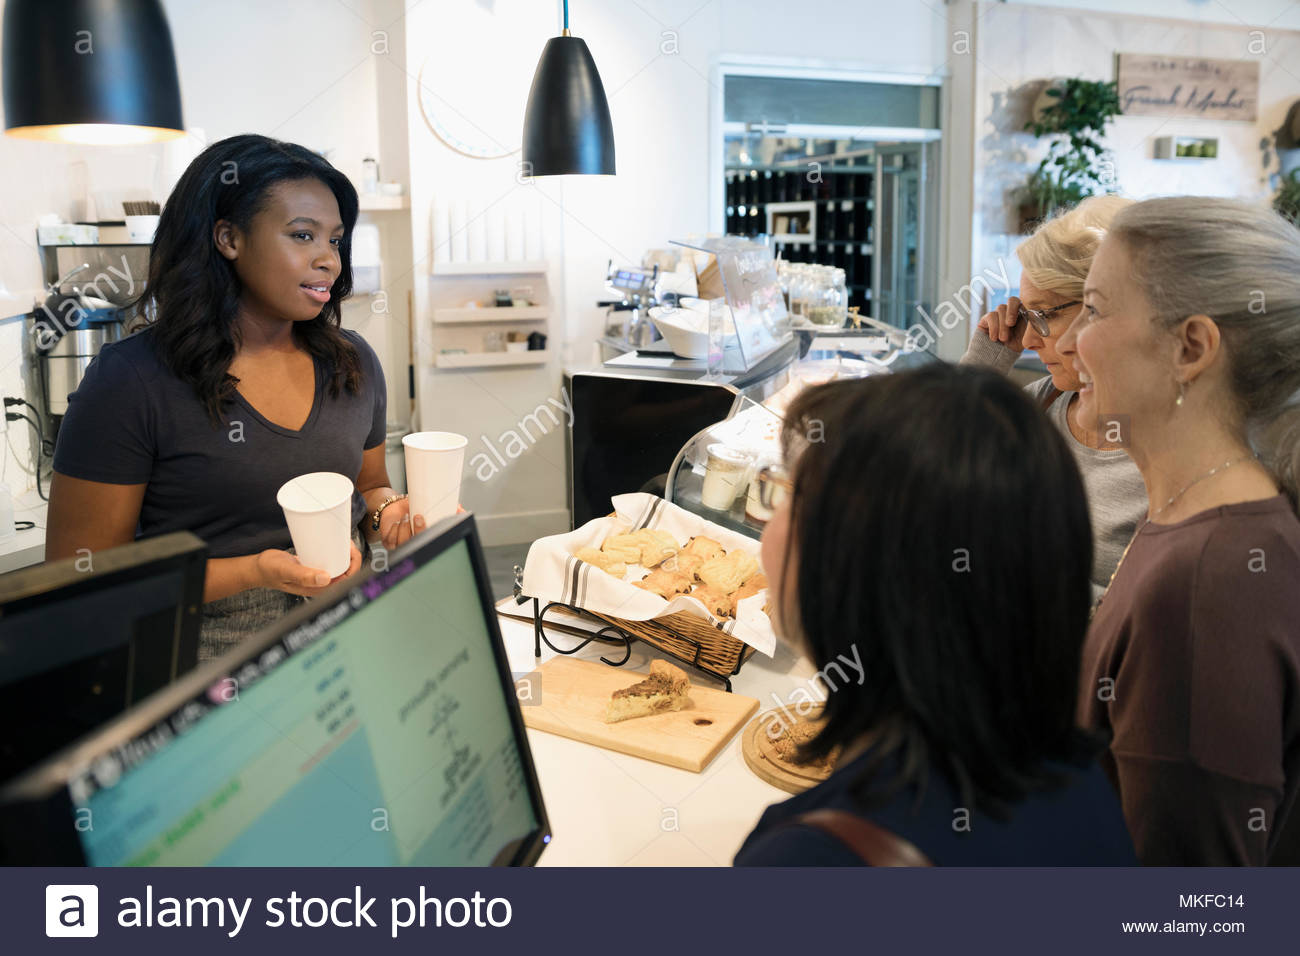 Female worker serving coffee to senior women in bakery - Stock Image